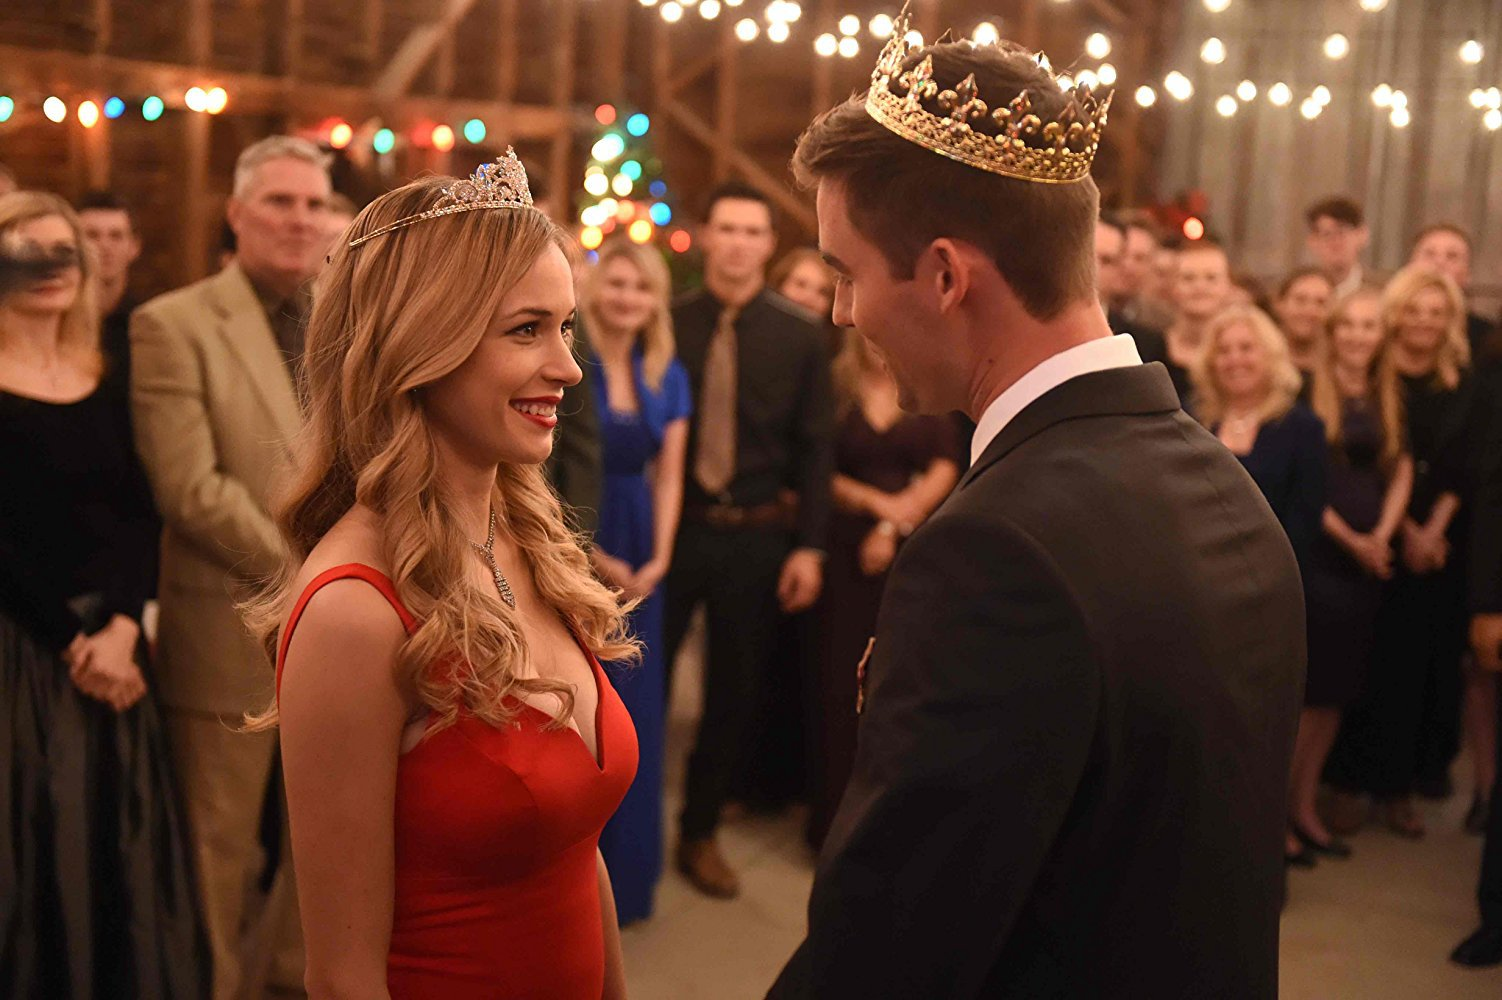 Watch My Christmas Prince 2017 full movie online or download fast